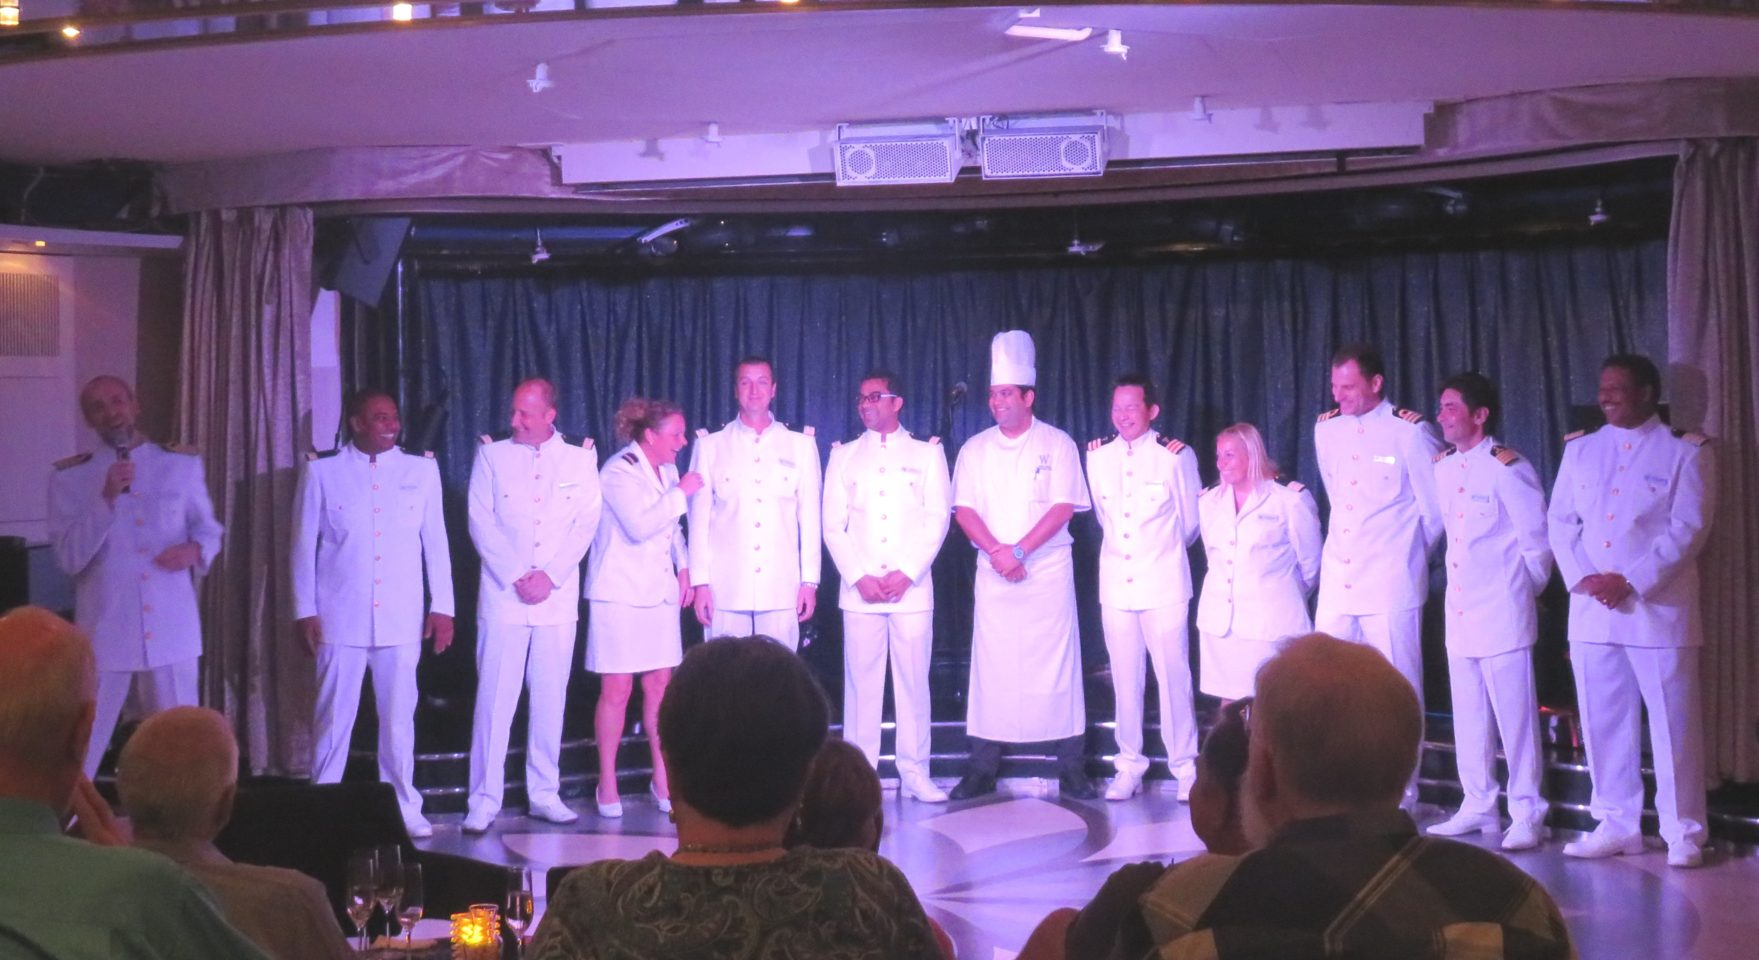 Windstar Cruises ~ The warm and friendly Star Legend Senior Officers